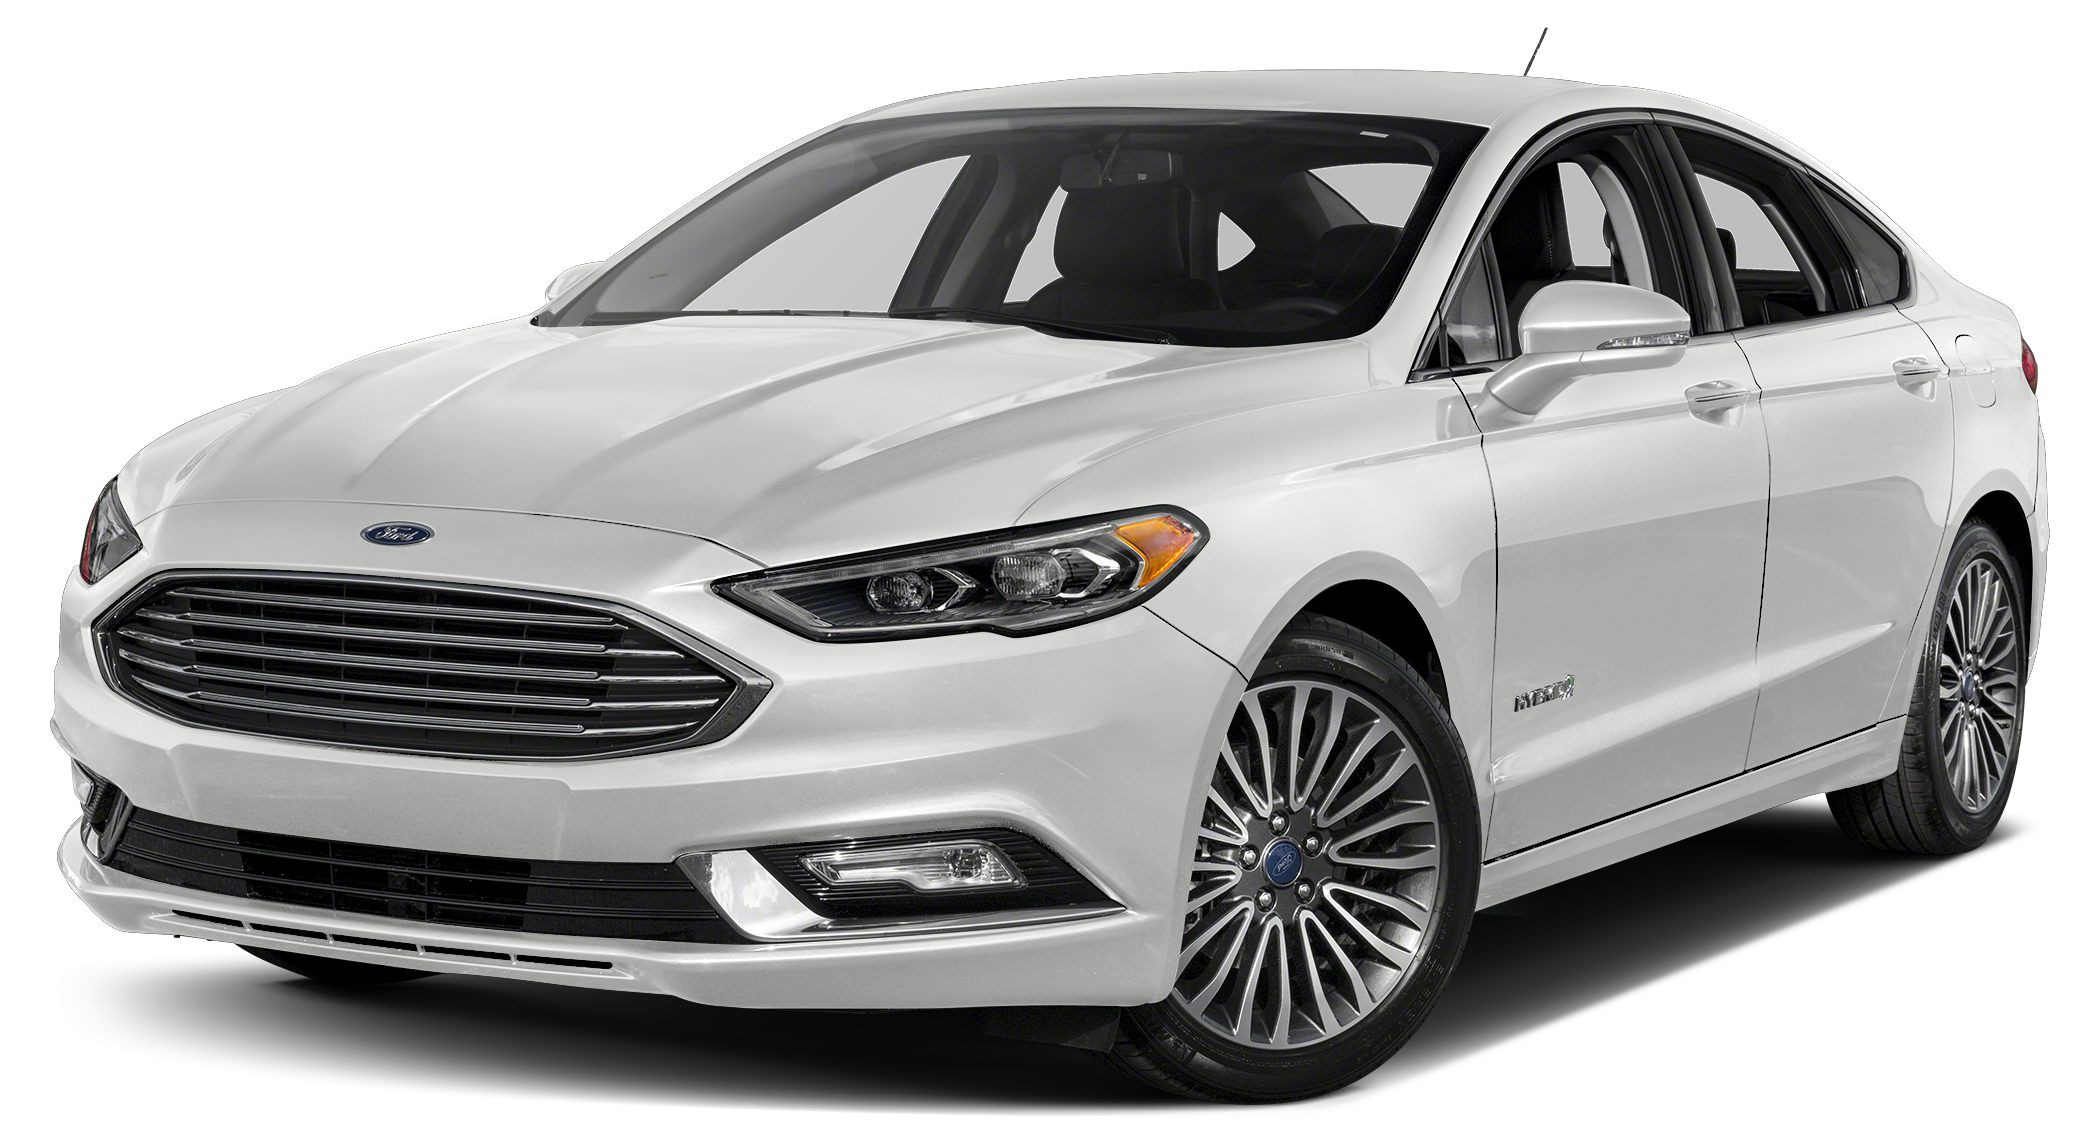 2017 Ford Fusion Hybrid Titanium The newly designed Ford Fusion is more stunning than ever New to